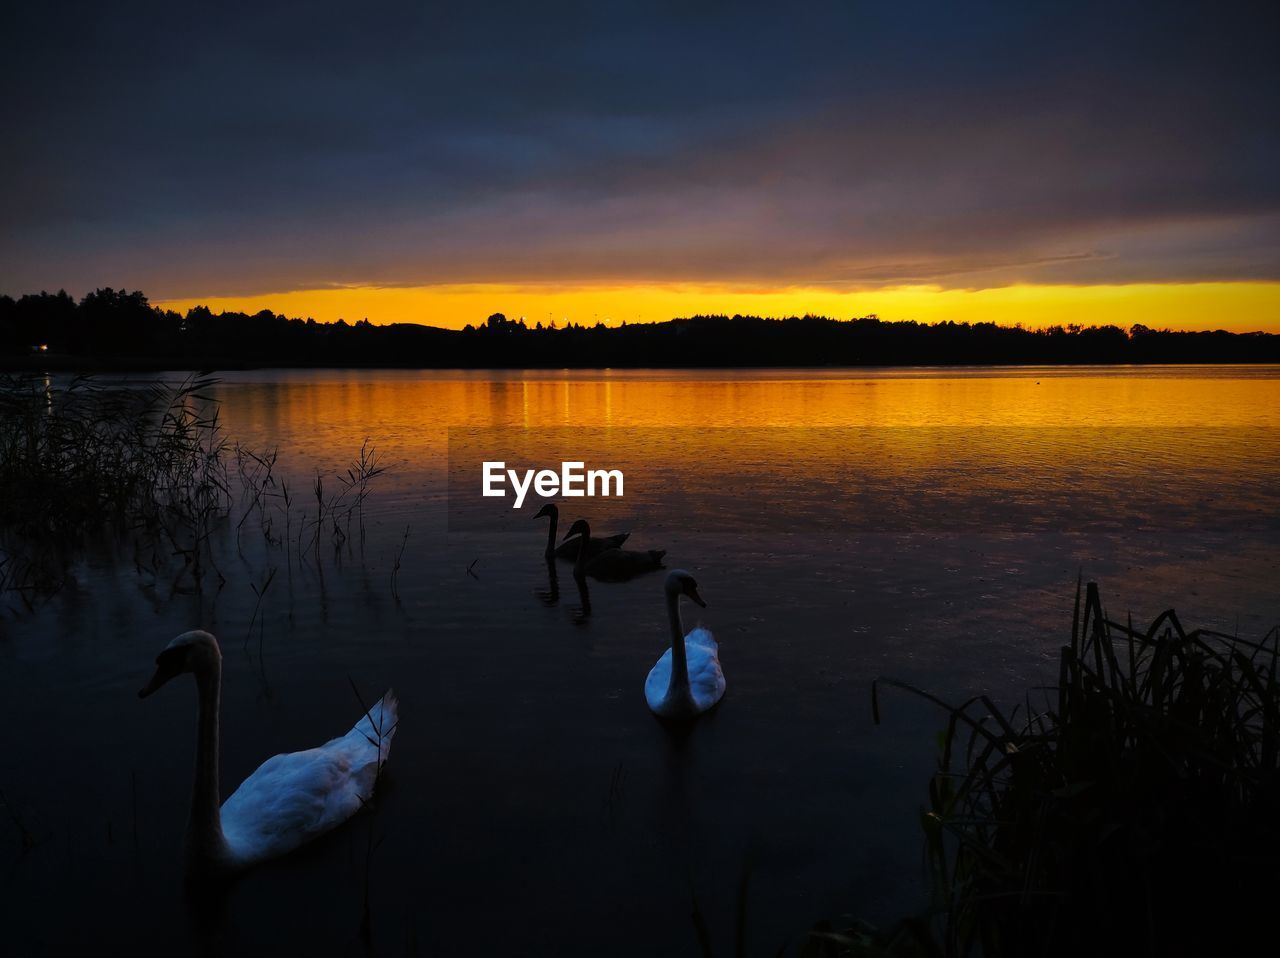 VIEW OF SWANS SWIMMING IN LAKE DURING SUNSET